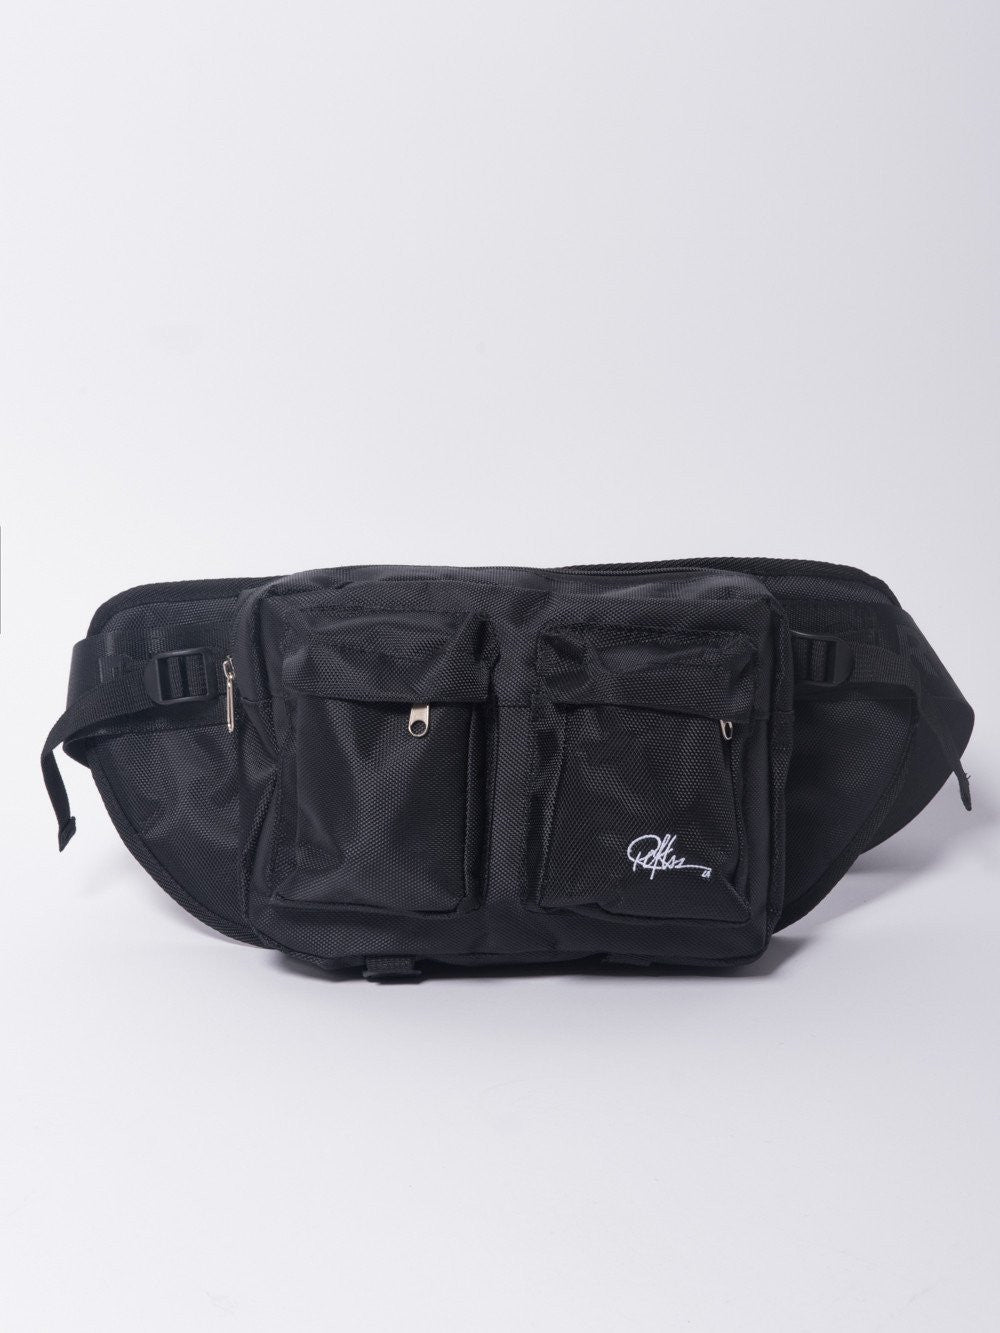 Young and Reckless Mens - Accessories - Bags Clive Waist Pack- Black